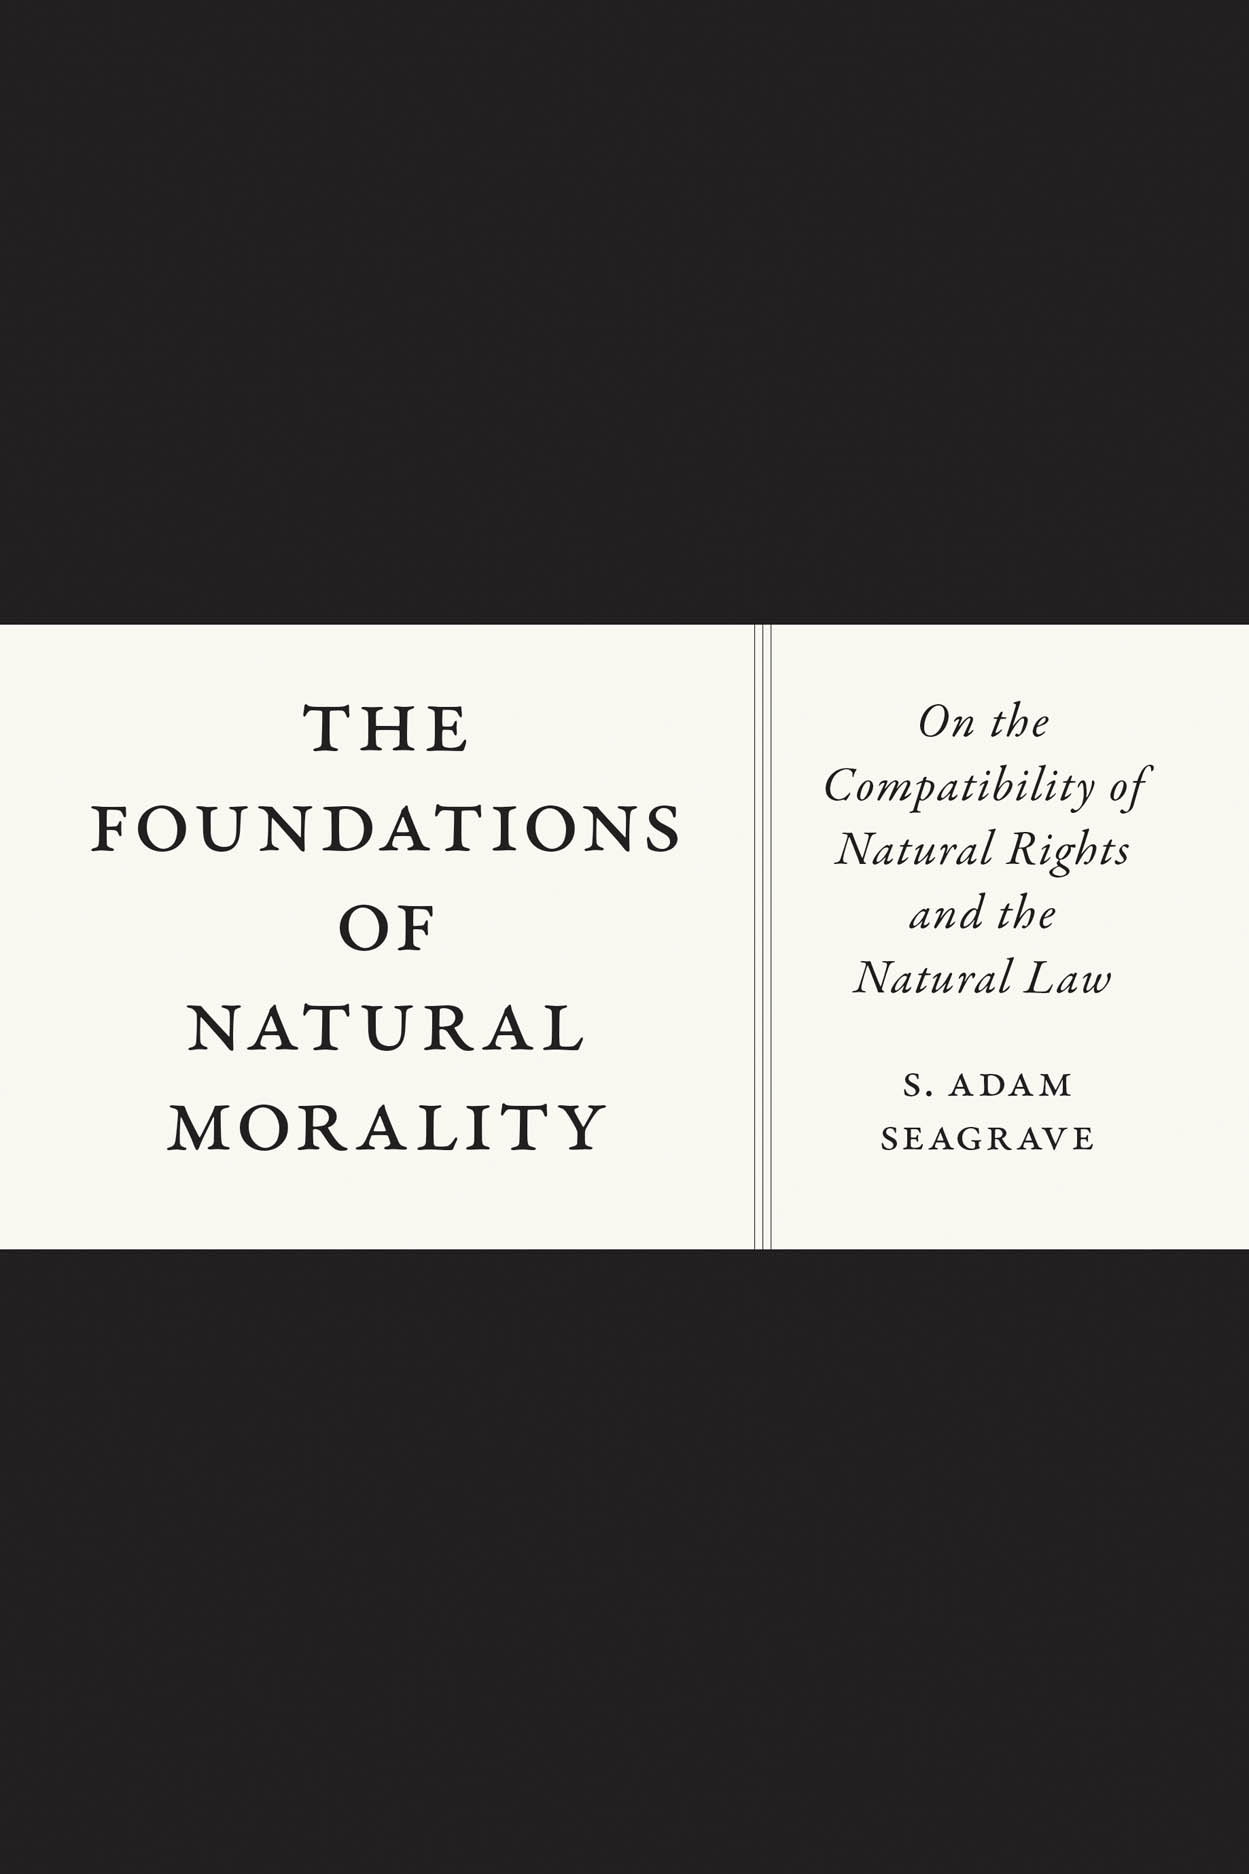 The Foundations of Natural Morality: On the Compatibility of Natural Rights and the Natural Law